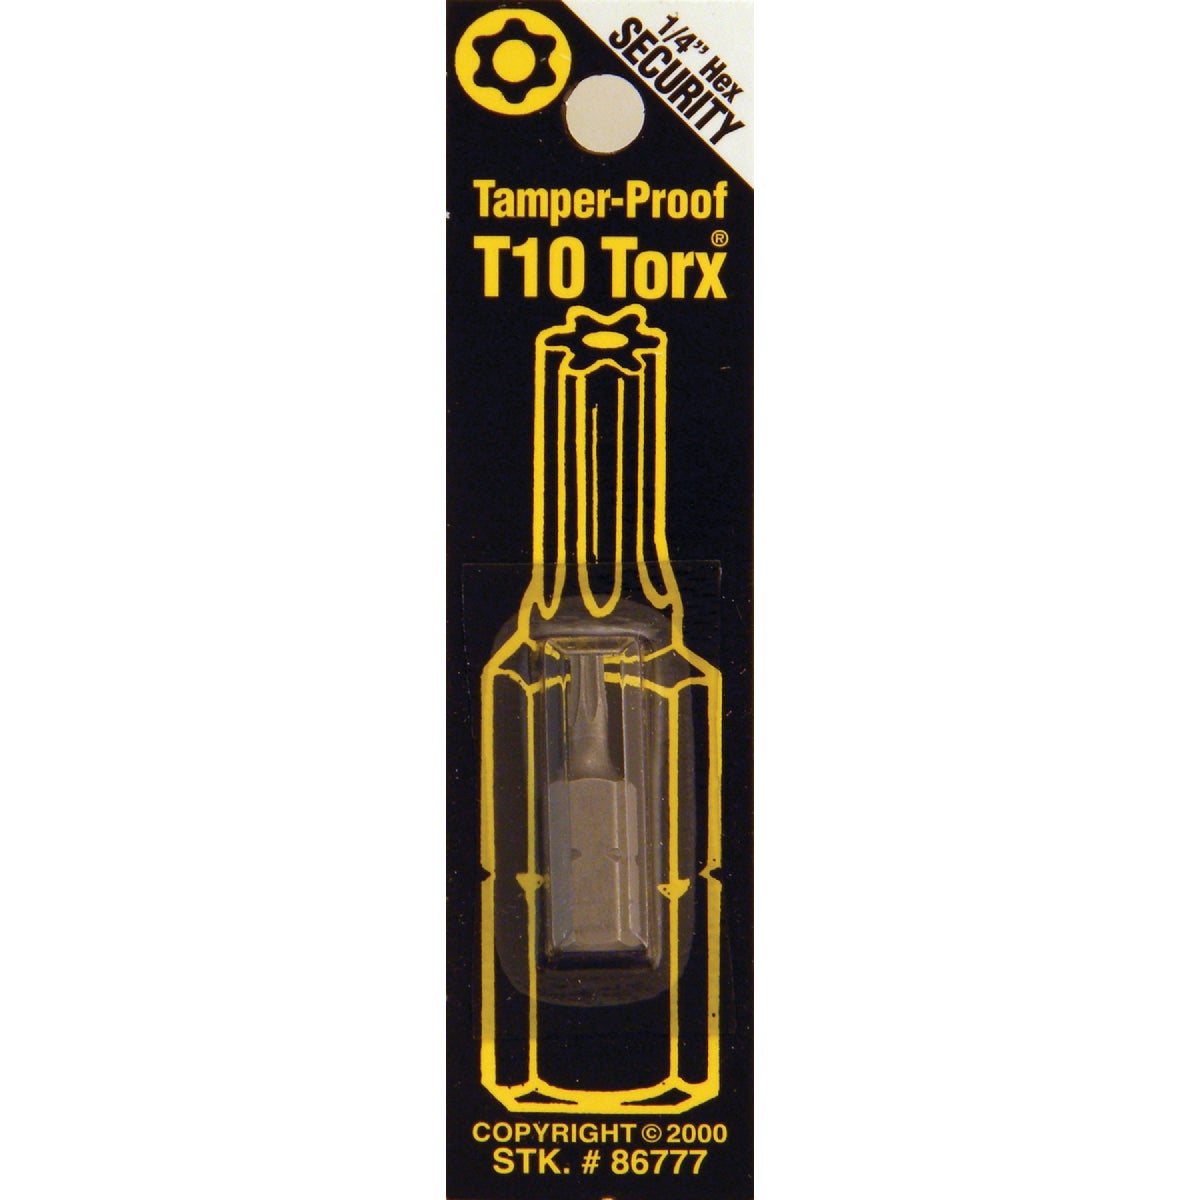 T10 TMPR SECURITY BIT - 86777 by Bwt Inc